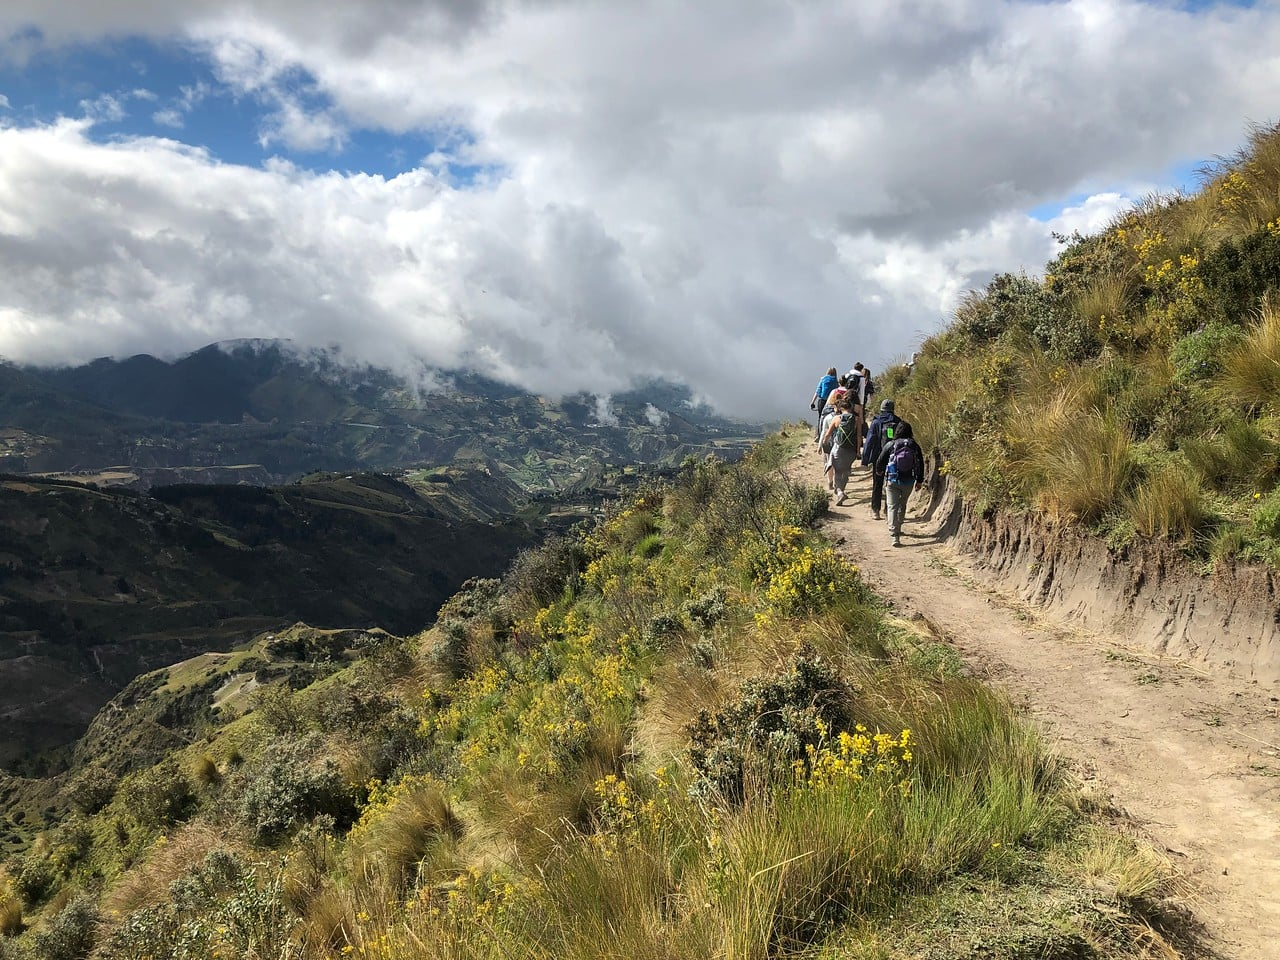 Teens take a hike in the Andes while on a hiking adventure this summer